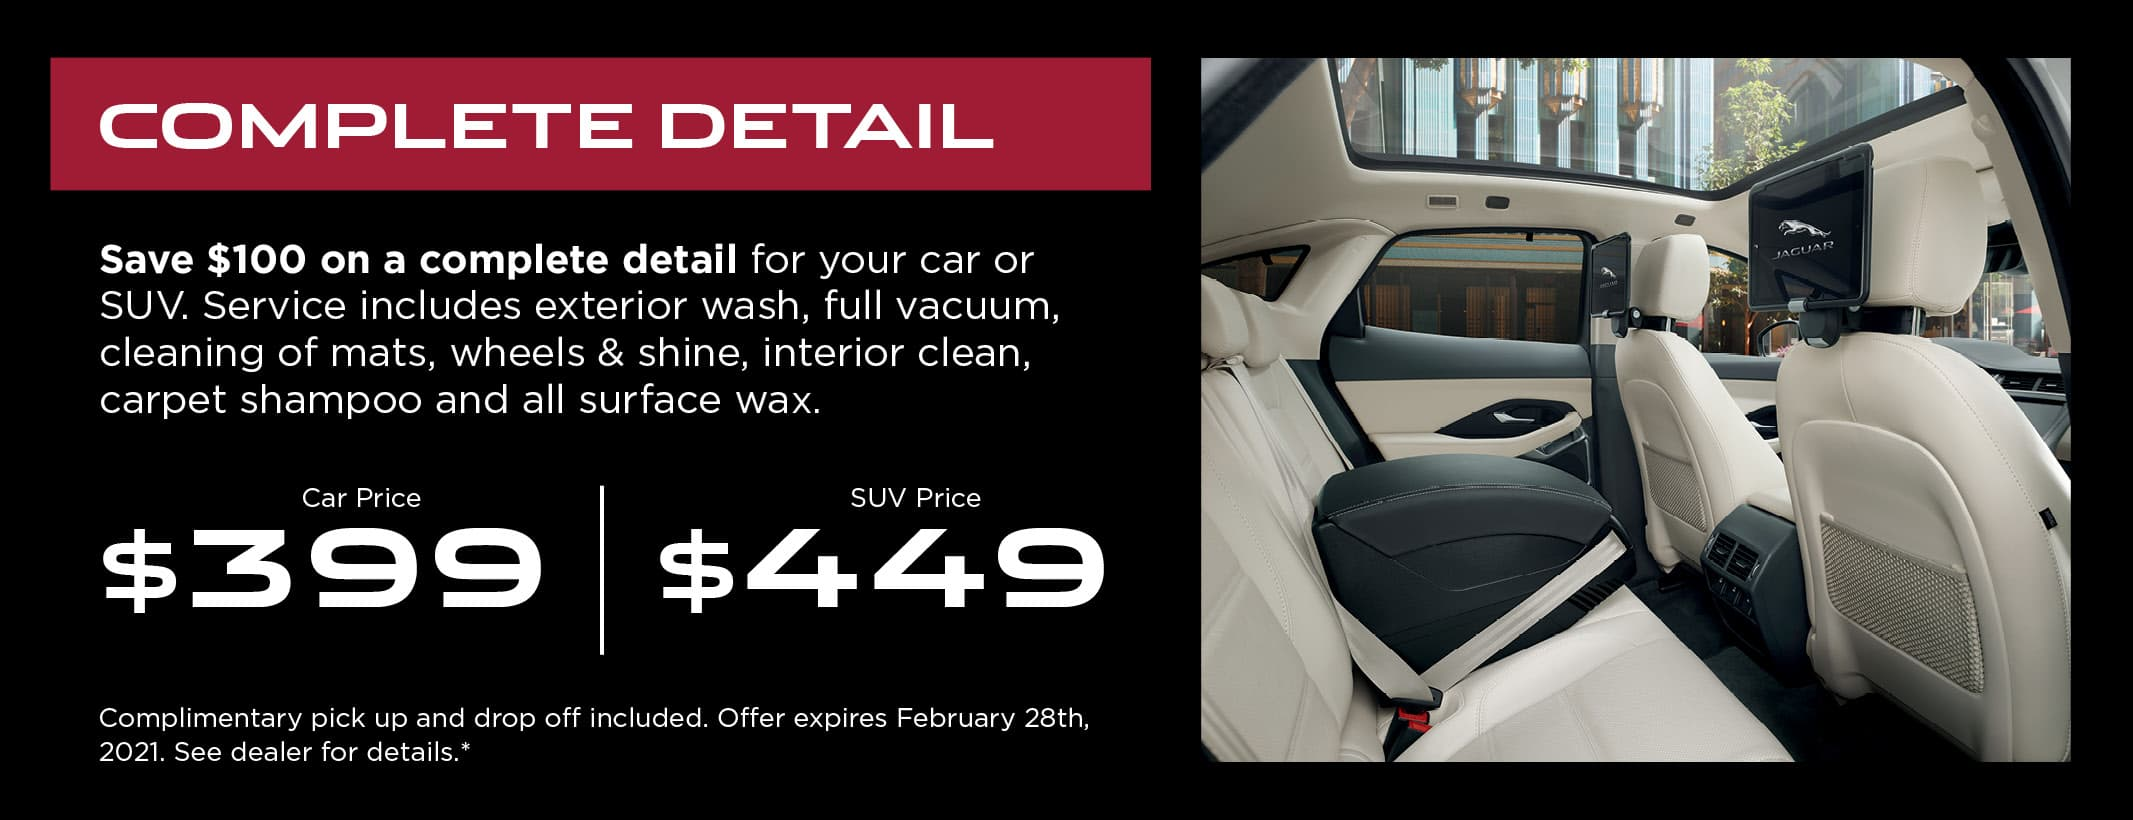 JLRL Service Detailing Offer Coupon Graphic